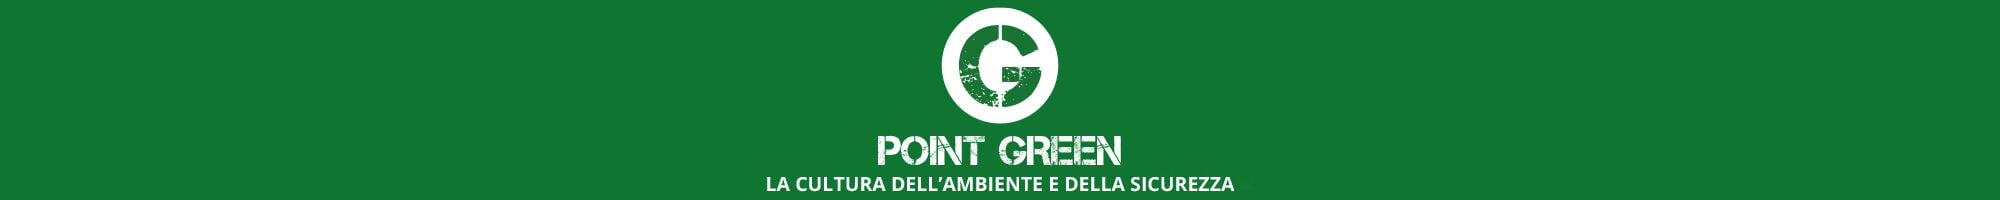 CRM Point Green